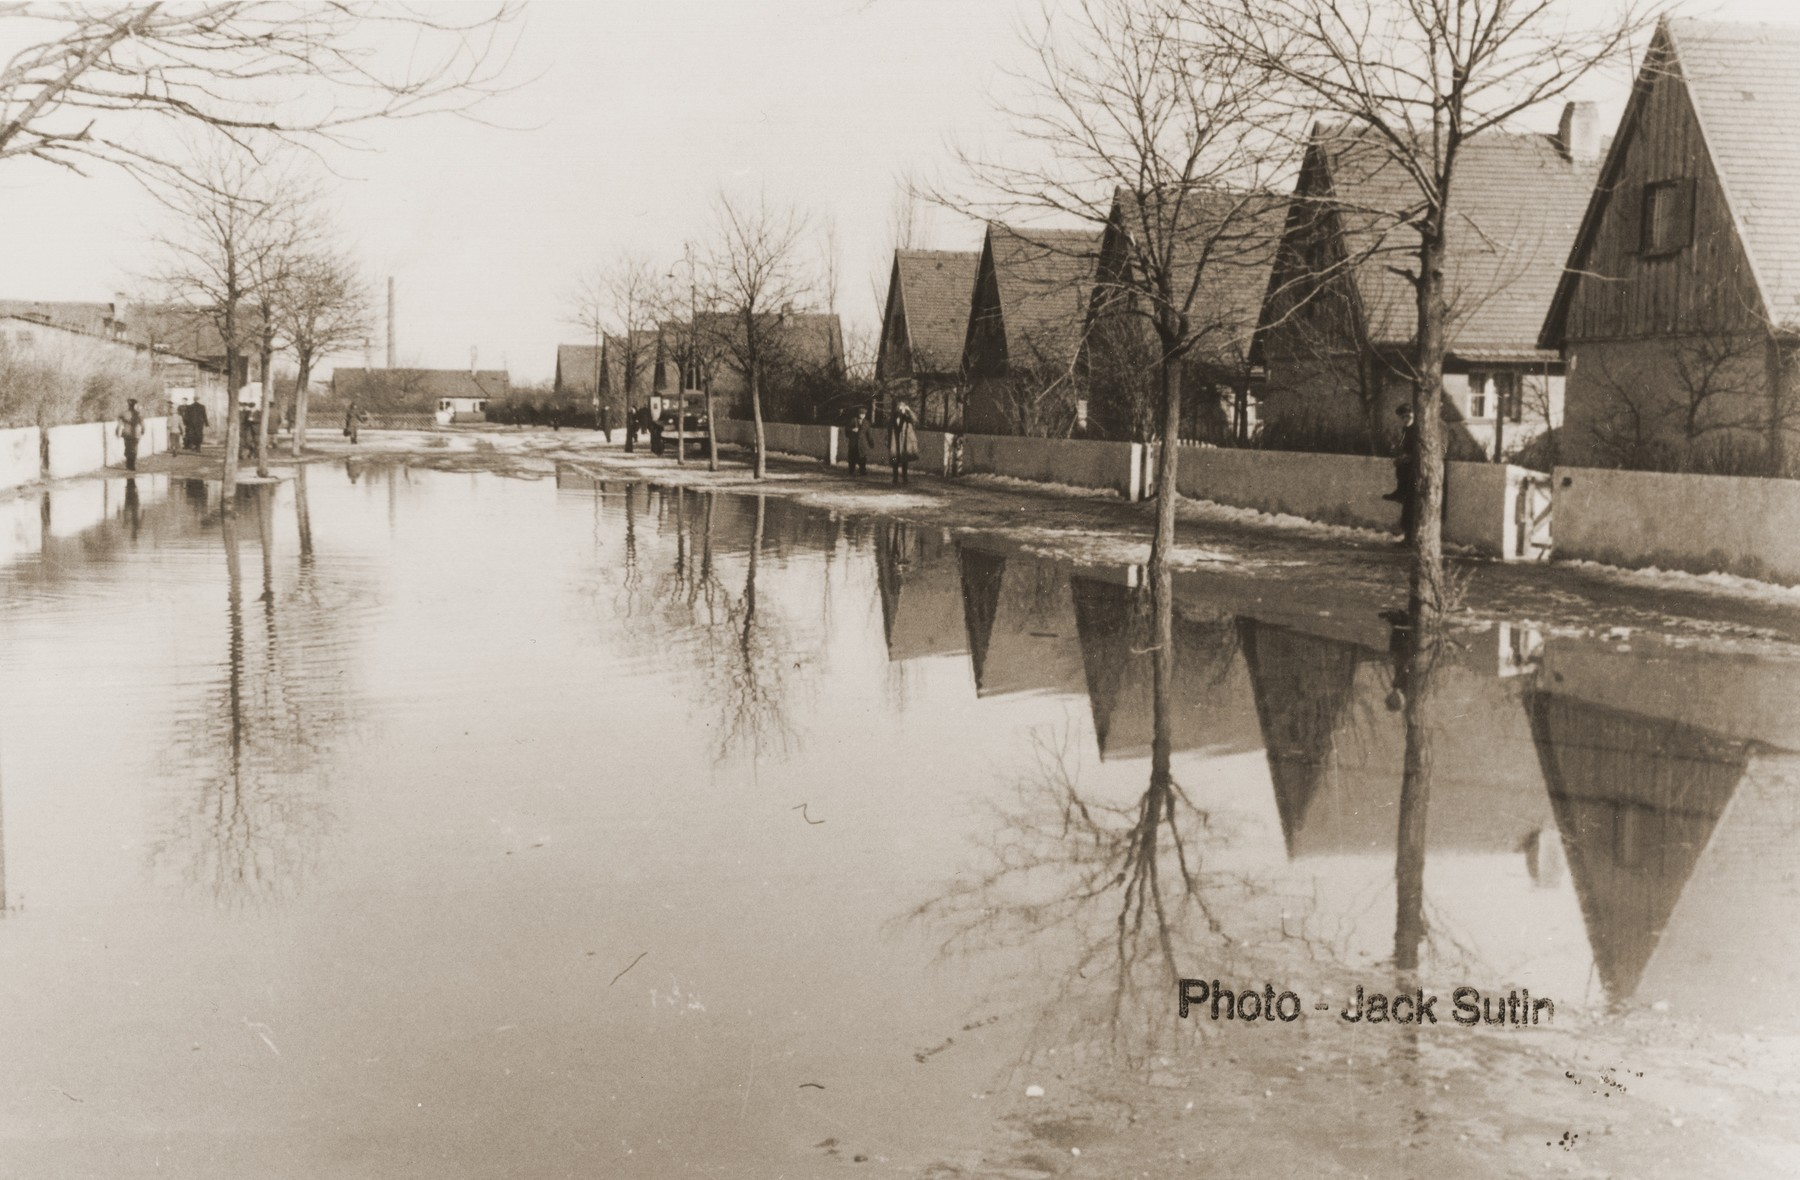 View of a flooded street in the Neu Freimann displaced persons camp.